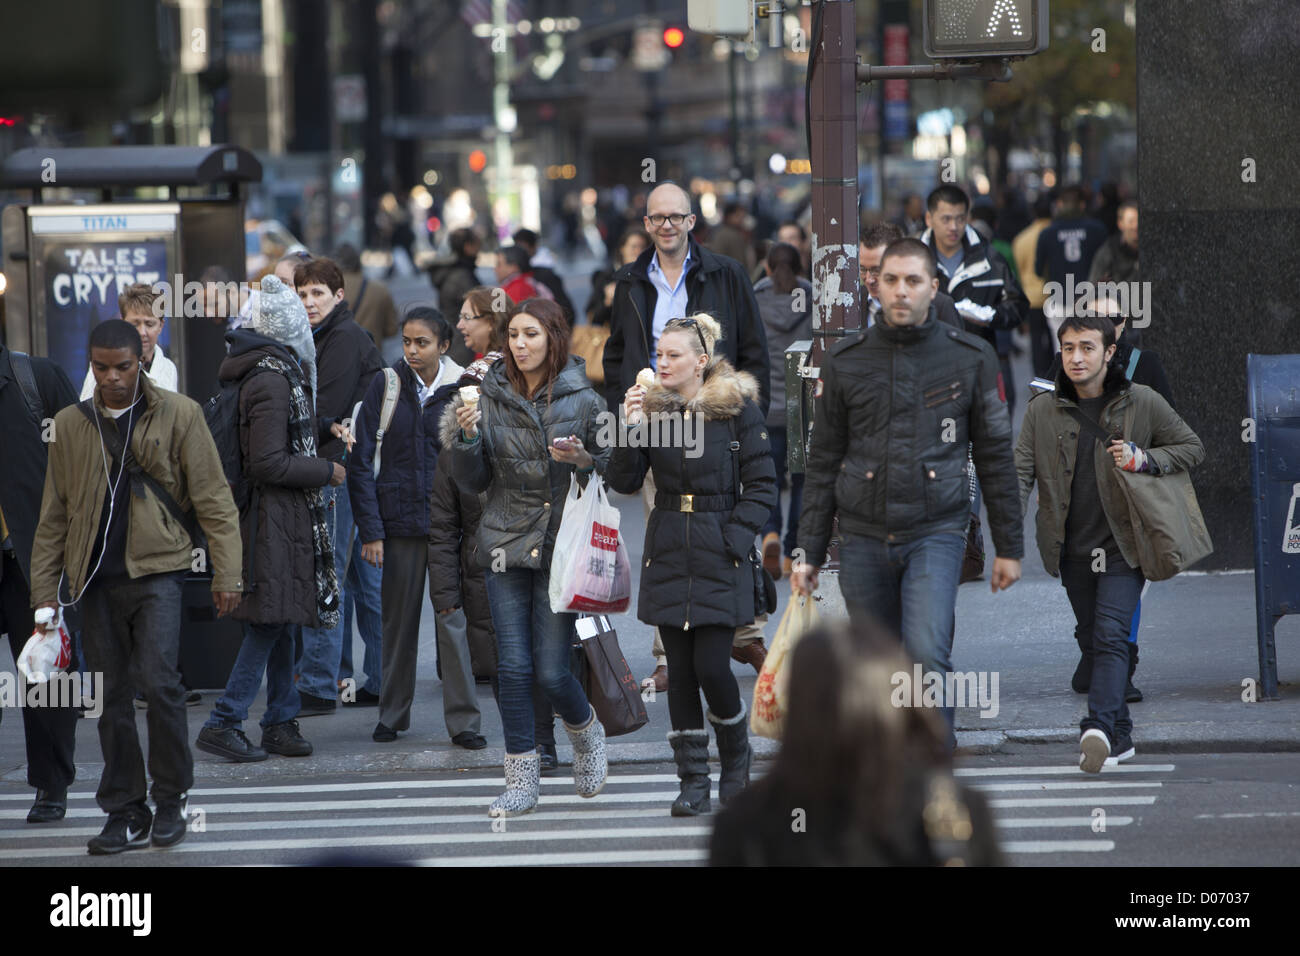 Women eat ice cream cones while crossing 5th Ave. on a brisk autumn day in Manhattan; NYC. - Stock Image